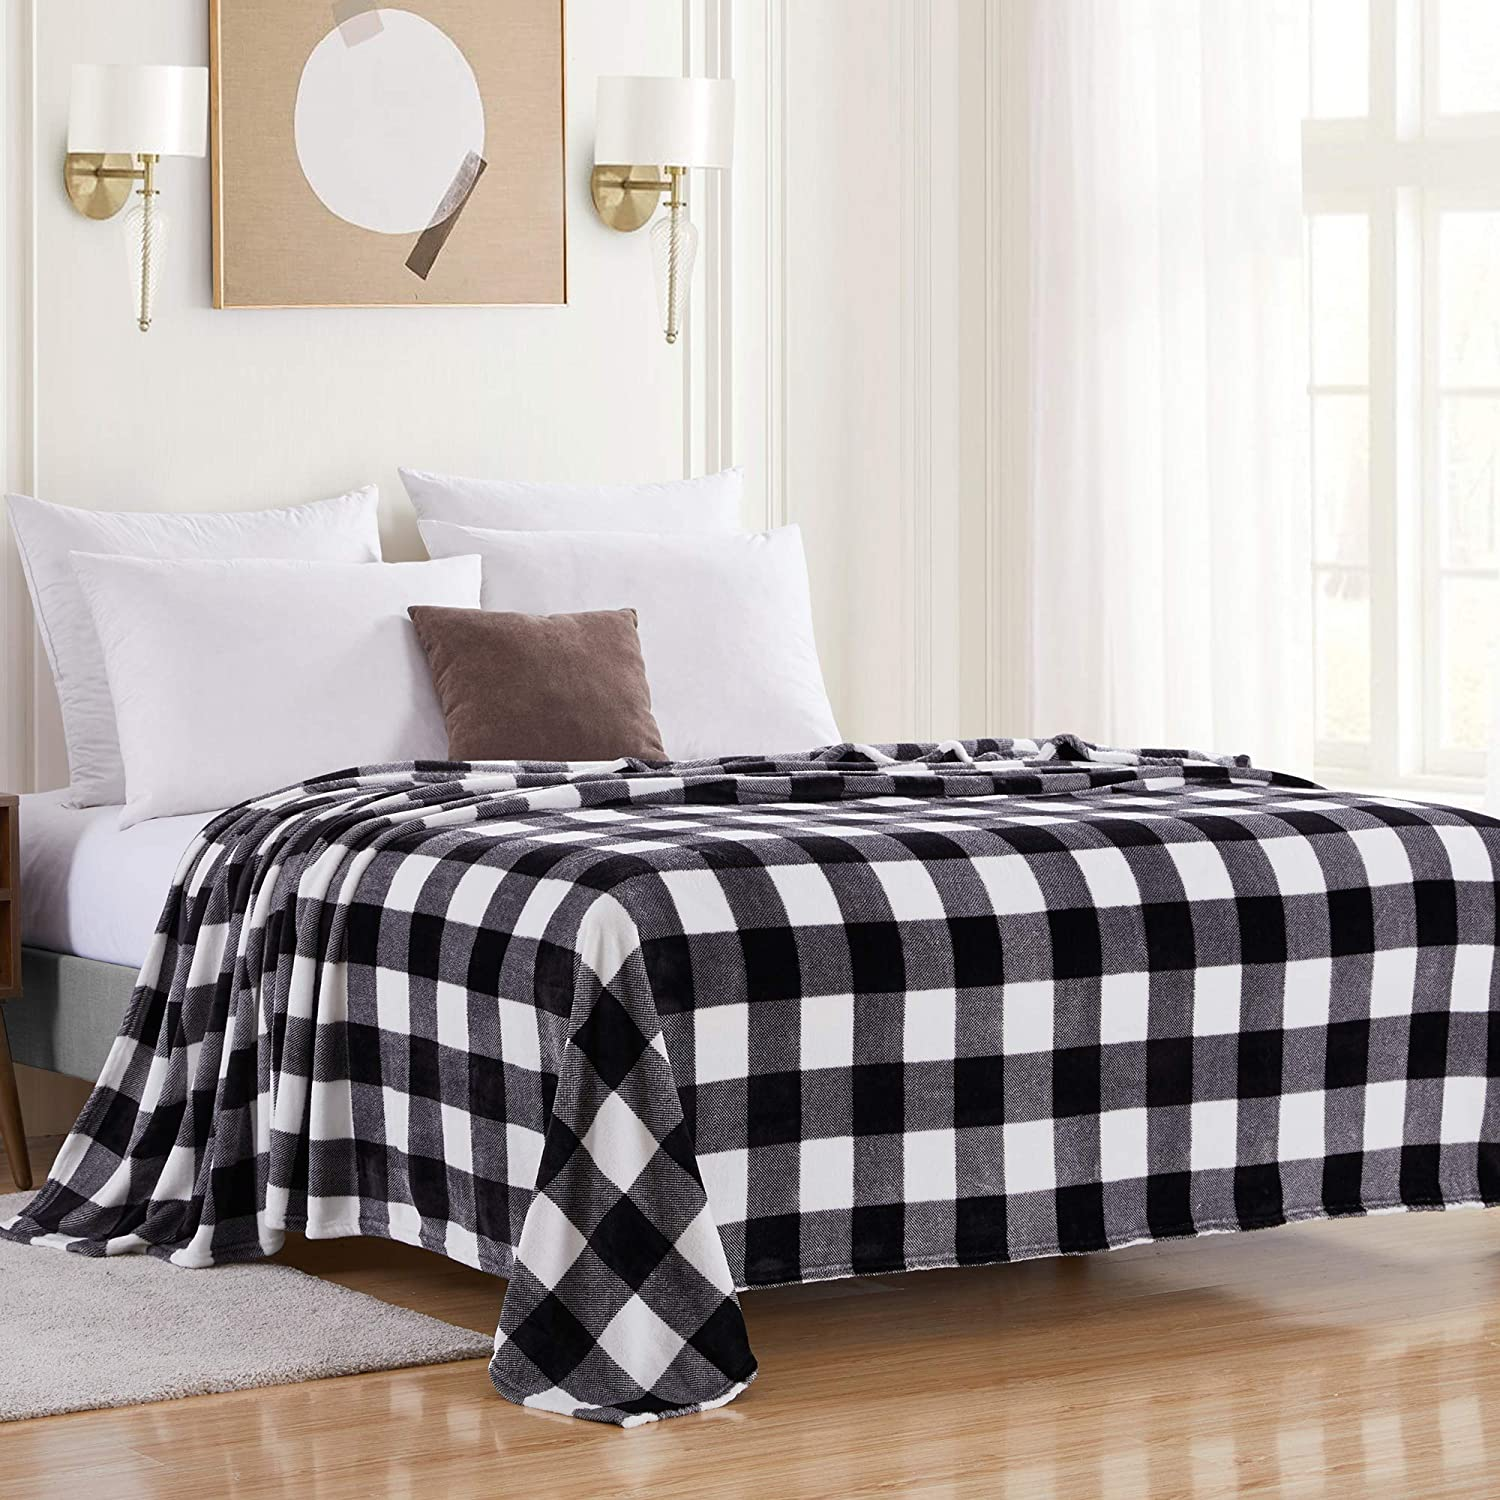 Sweet Home Collection Buffalo Plaid and Plus Wholesale We OFFer at cheap prices Fleece Soft Blanket